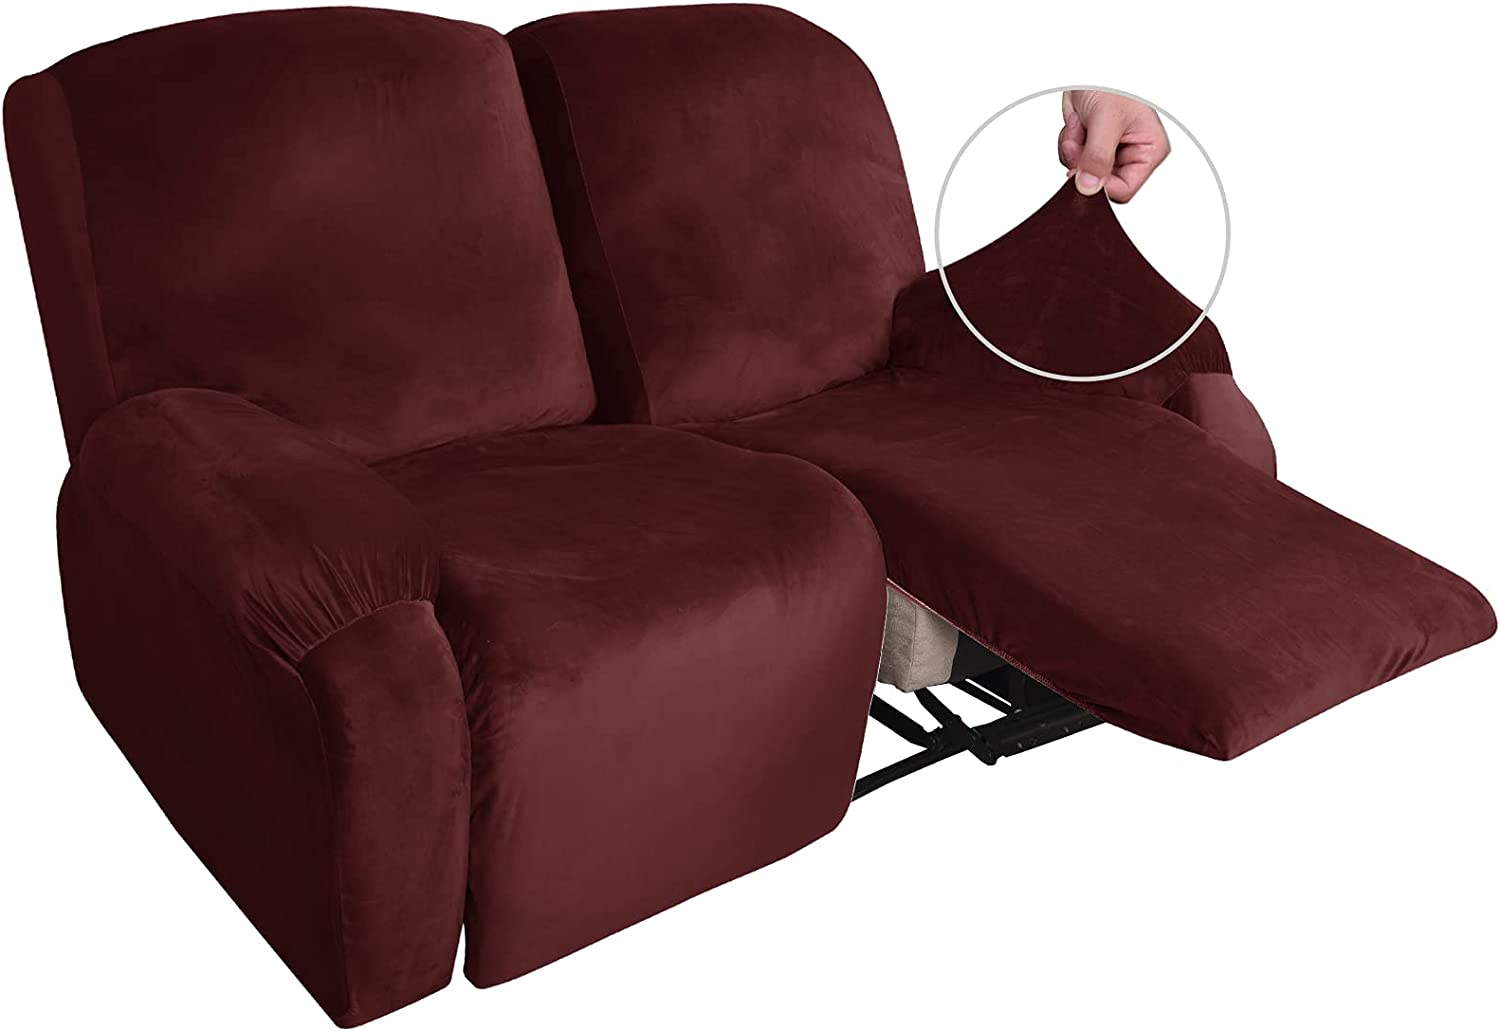 MAXIJIN Recliner Loveseat Slipcover, 6 Pieces Stretch Velvet Reclining Sofa Cover, 2 Seater Love Seat Recliner Couch Cover, Thick, Soft, Washable Furniture Cover (Loveseat Recliner, Wine Red)